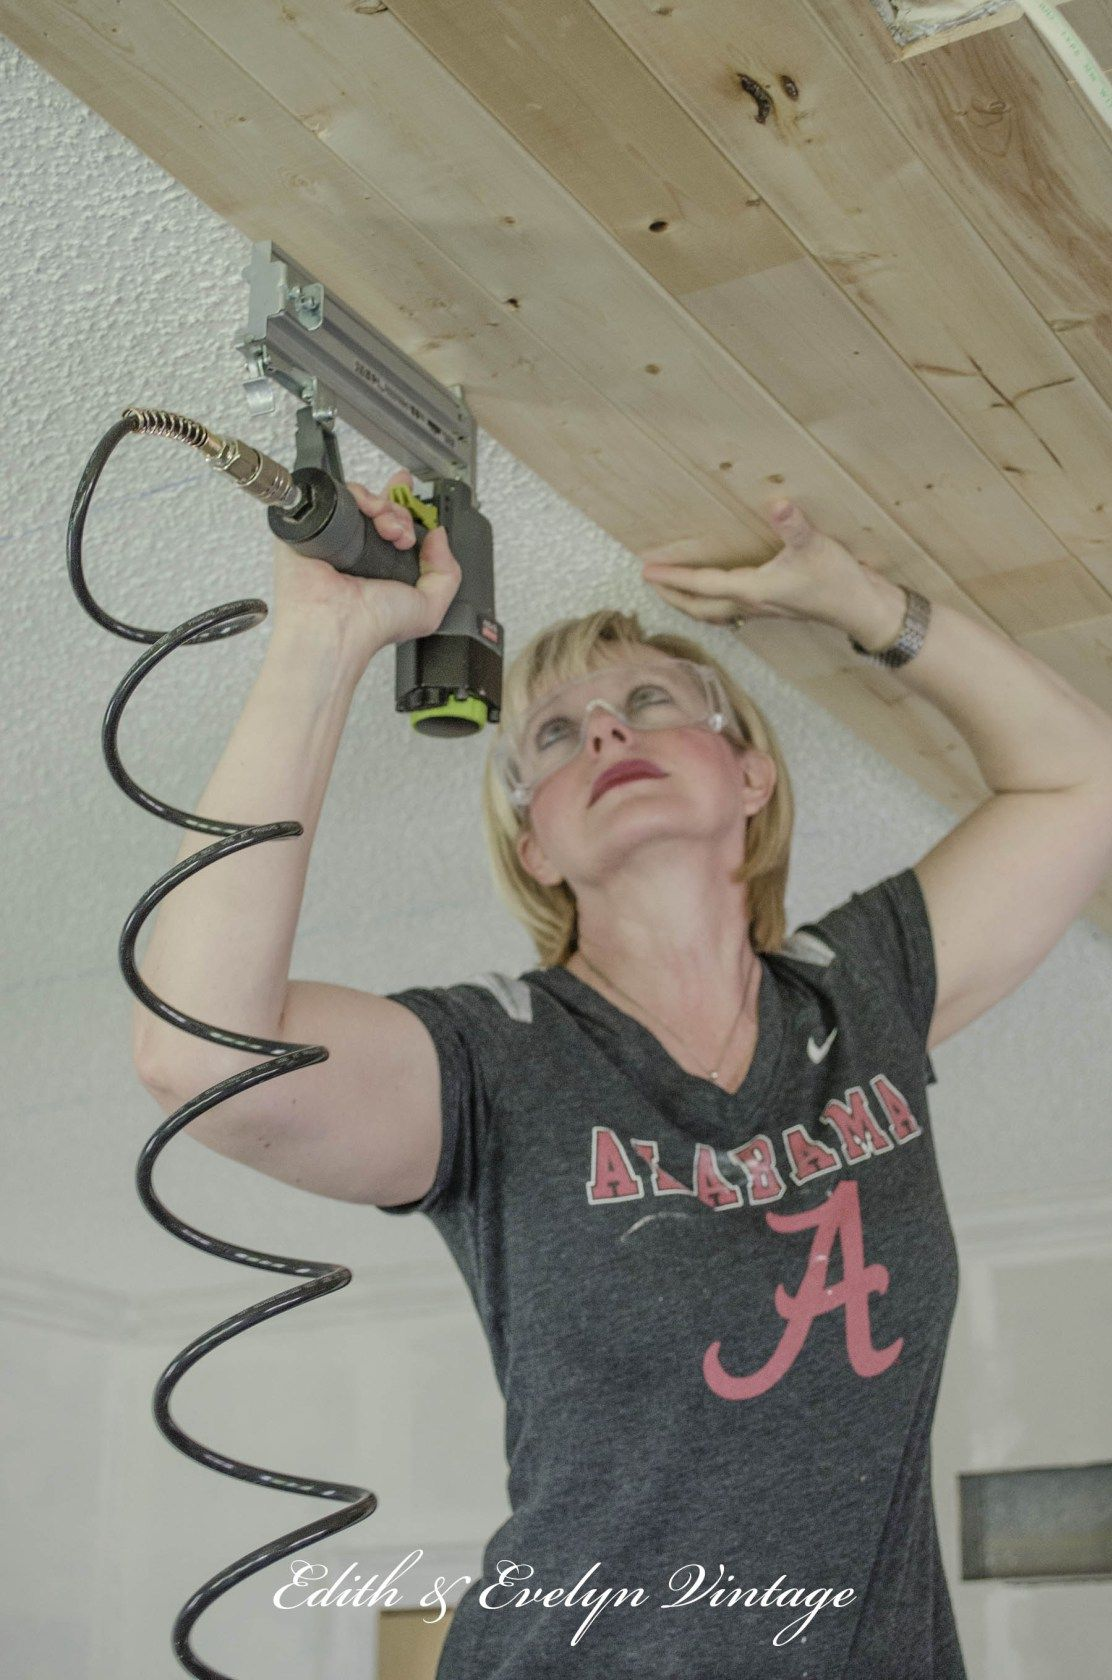 How to plank a popcorn ceiling with lightweight tongue and groove how to plank a popcorn ceiling with lightweight tongue and groove wood planks dailygadgetfo Image collections